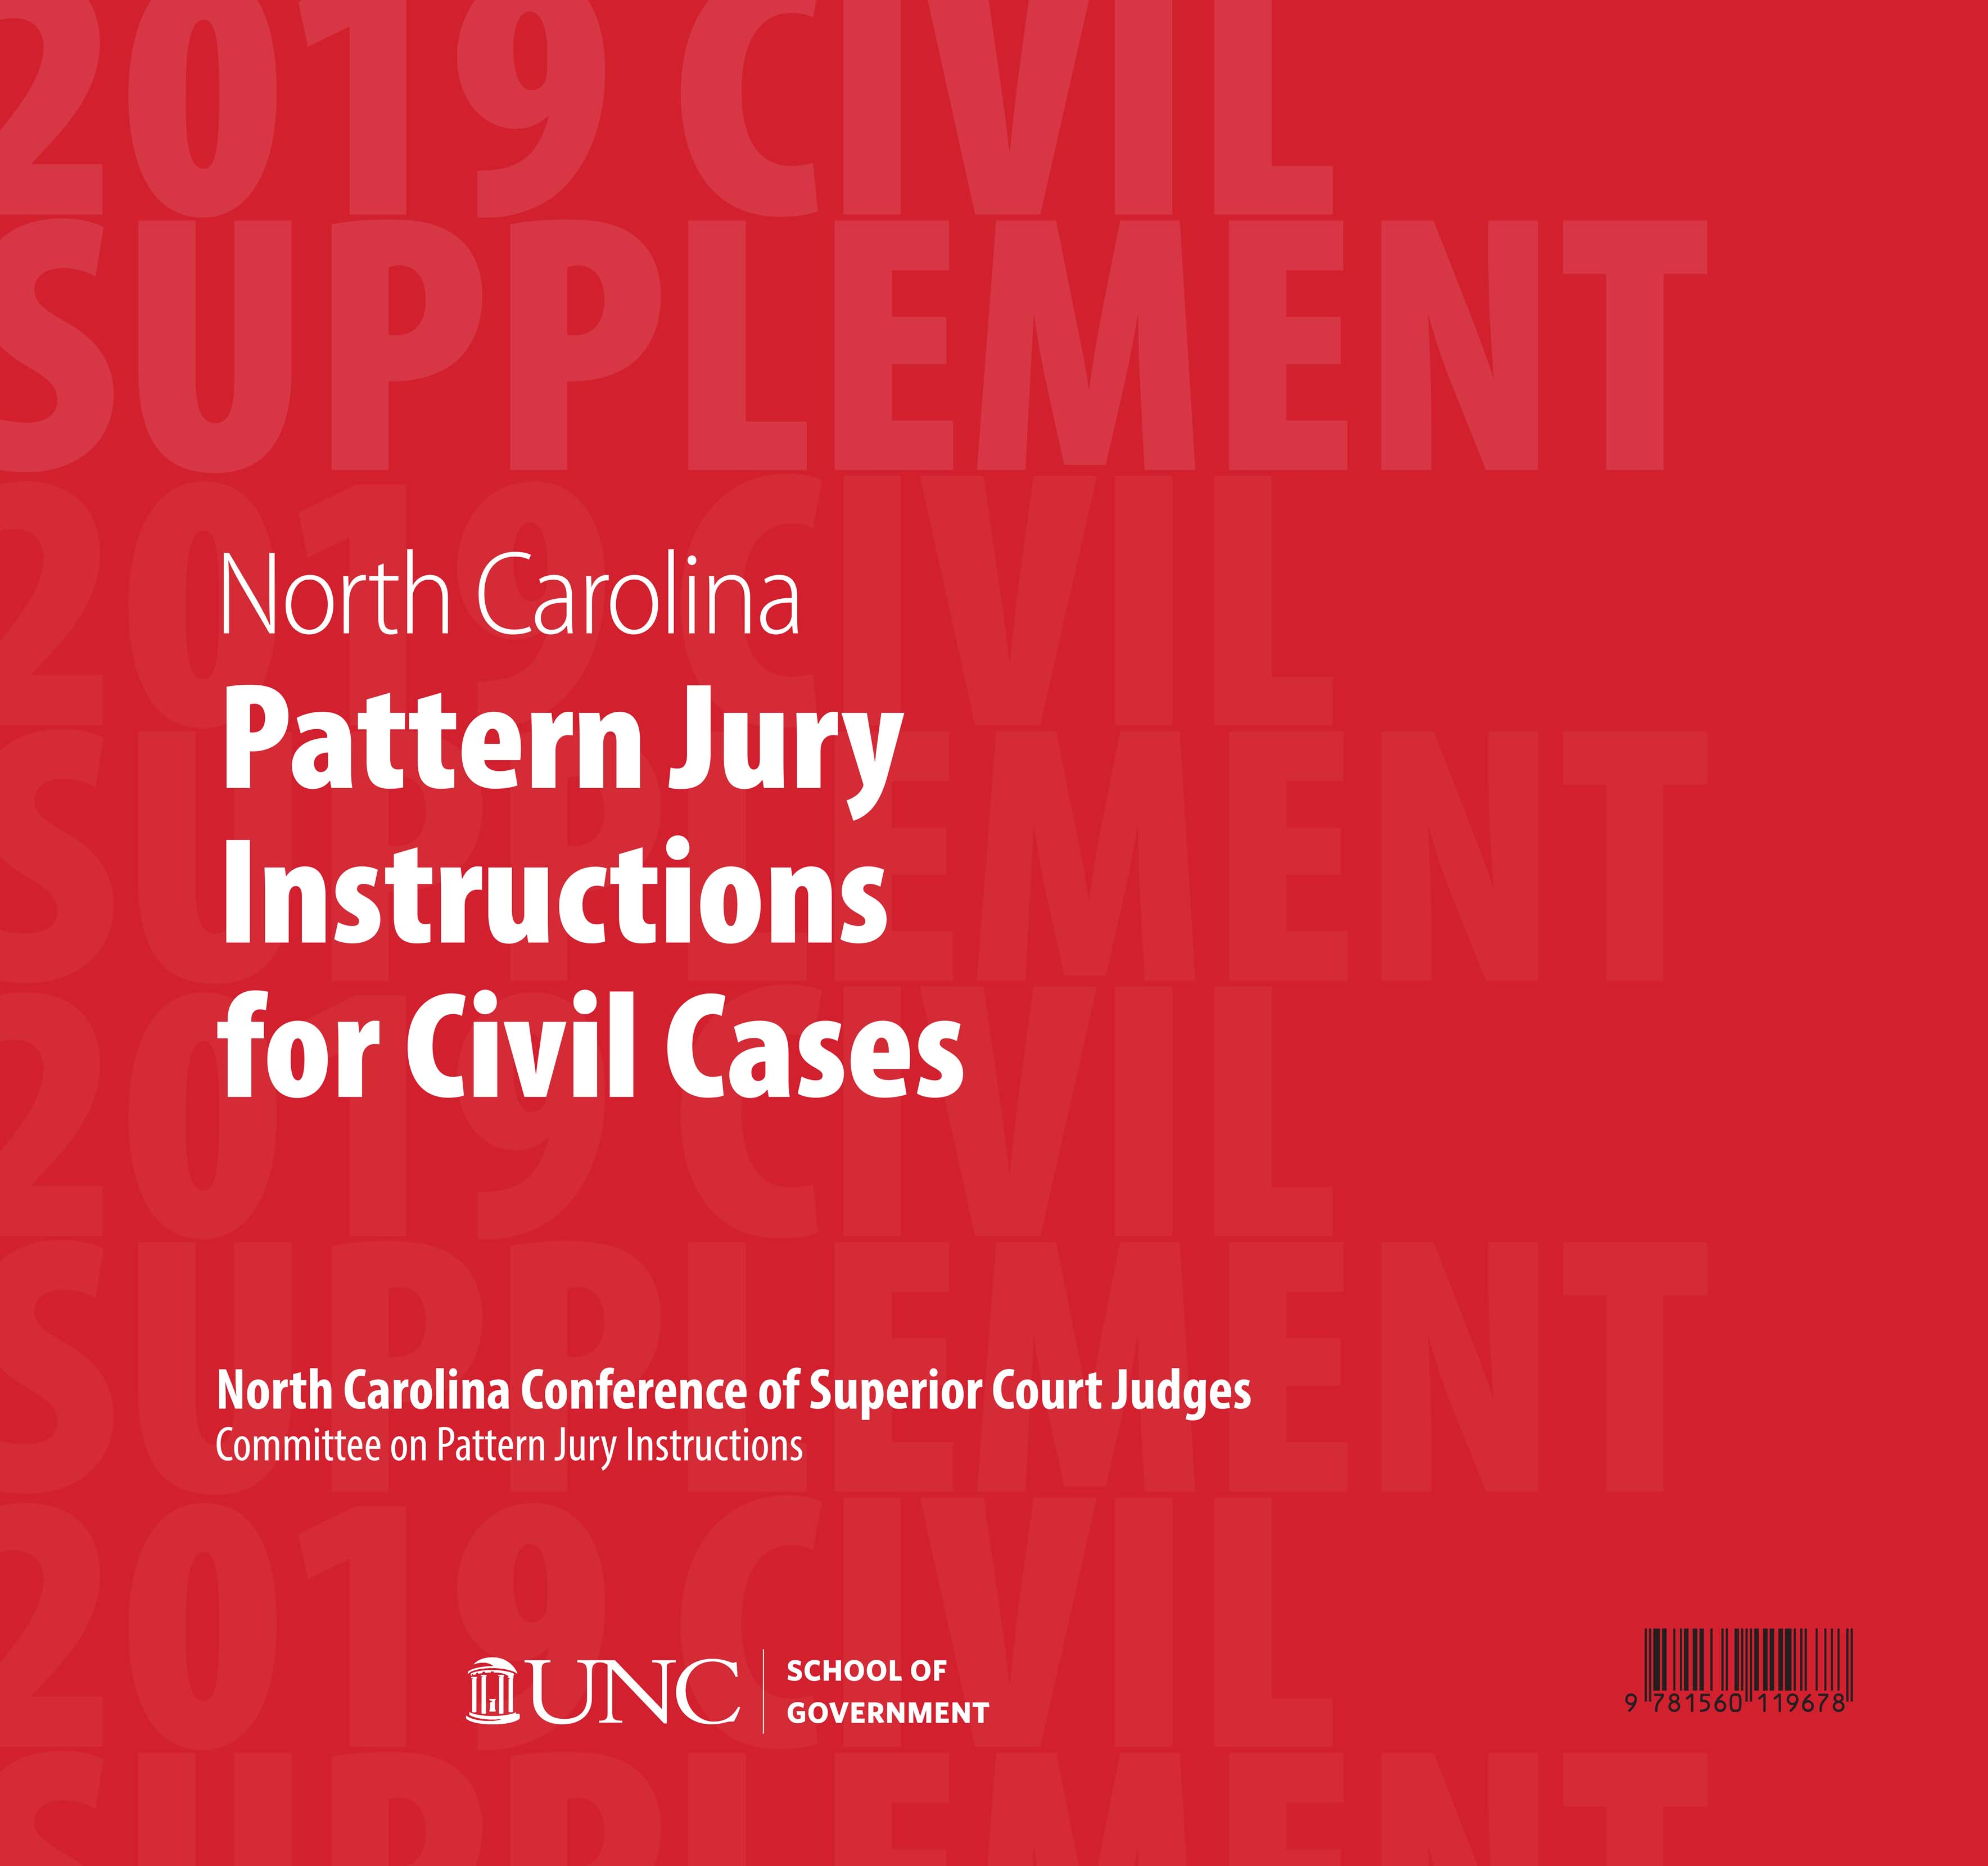 Cover image for June 2019 Supplement to North Carolina Pattern Jury Instructions for Civil Cases